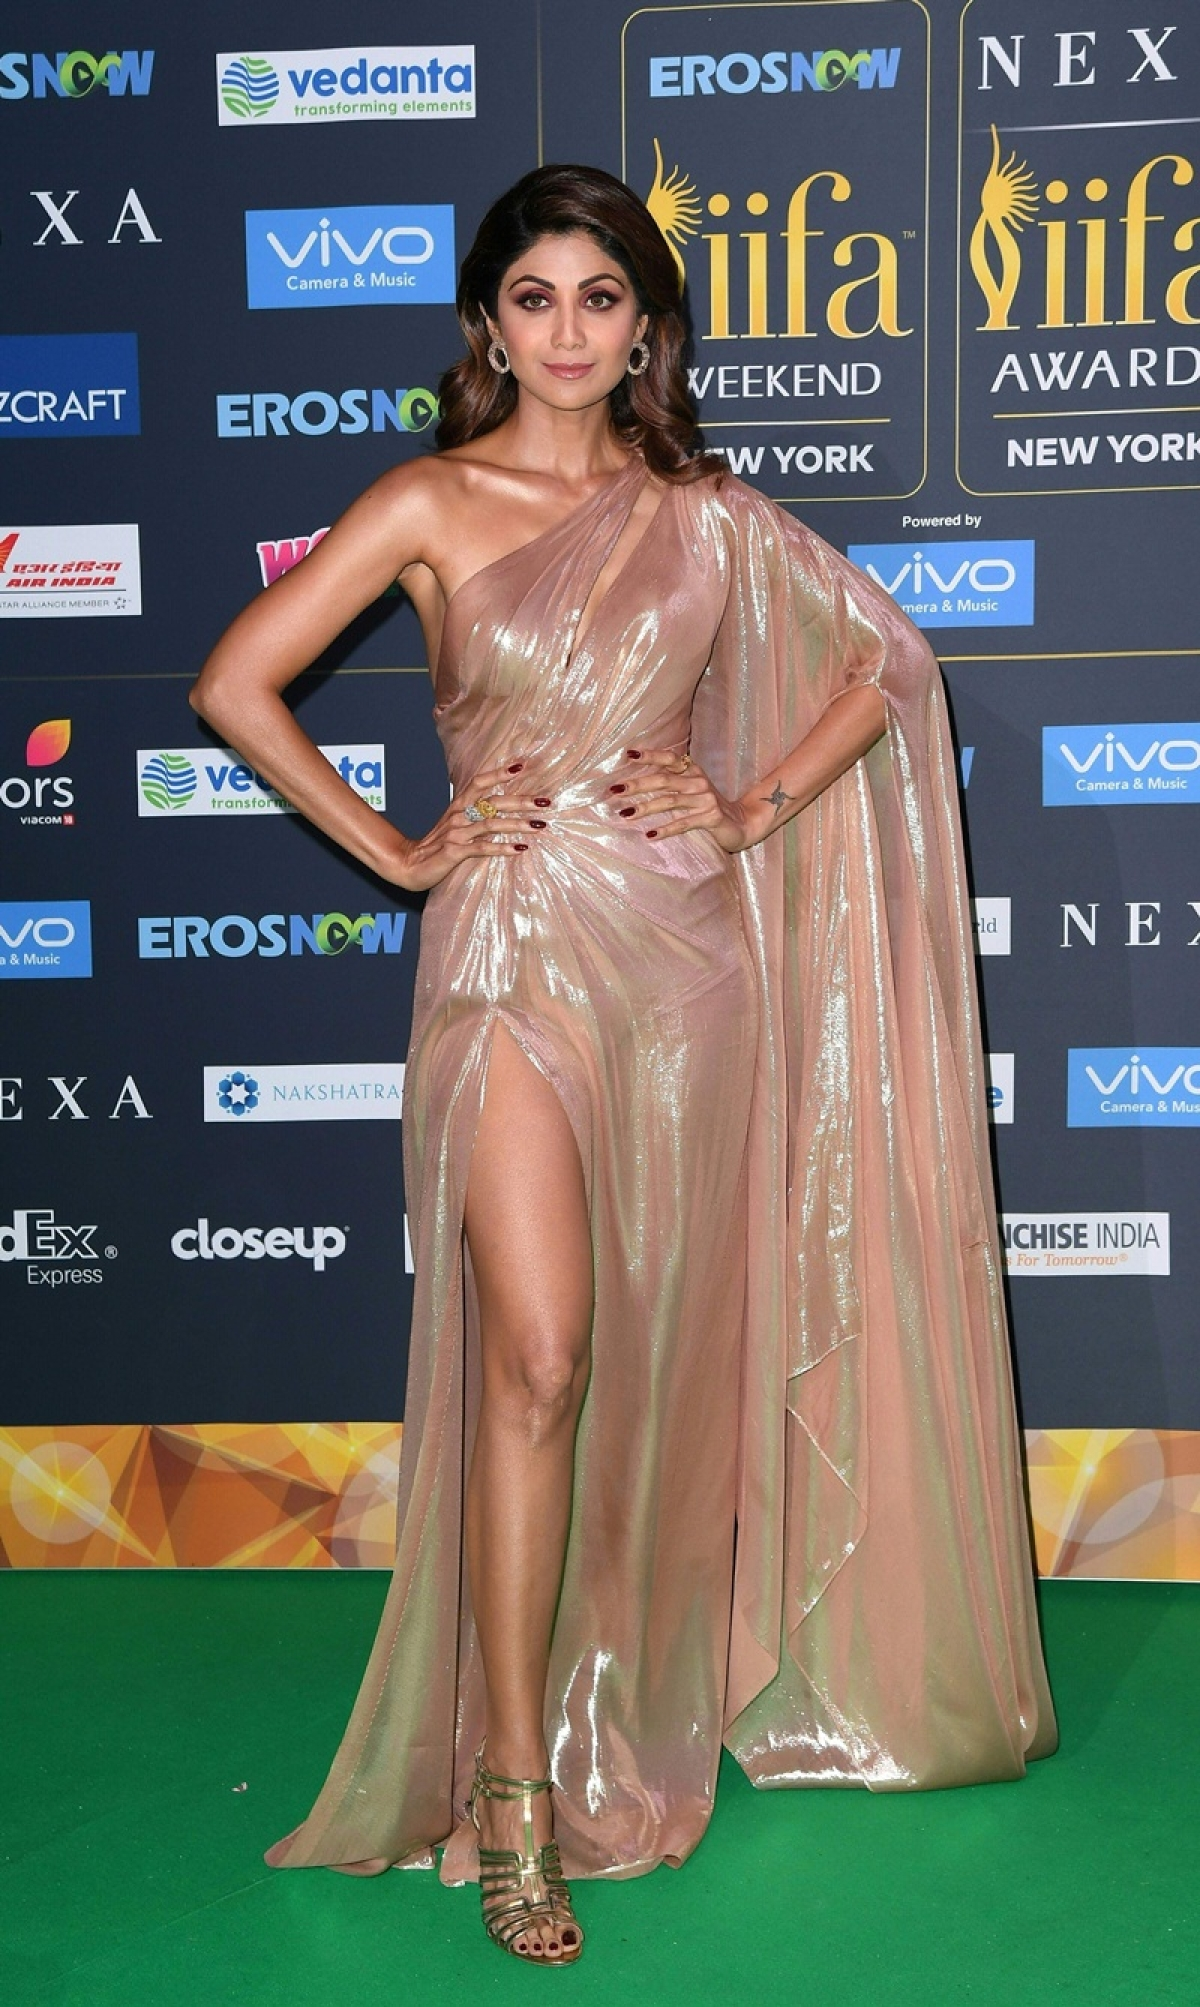 Bollywood Actress Shilpa Shetty arrives for the IIFA Awards July 15, 2017 at the MetLife Stadium in East Rutherford, New Jersey during the 18th International Indian Film Academy (IIFA) Festival. / AFP PHOTO / ANGELA WEISS